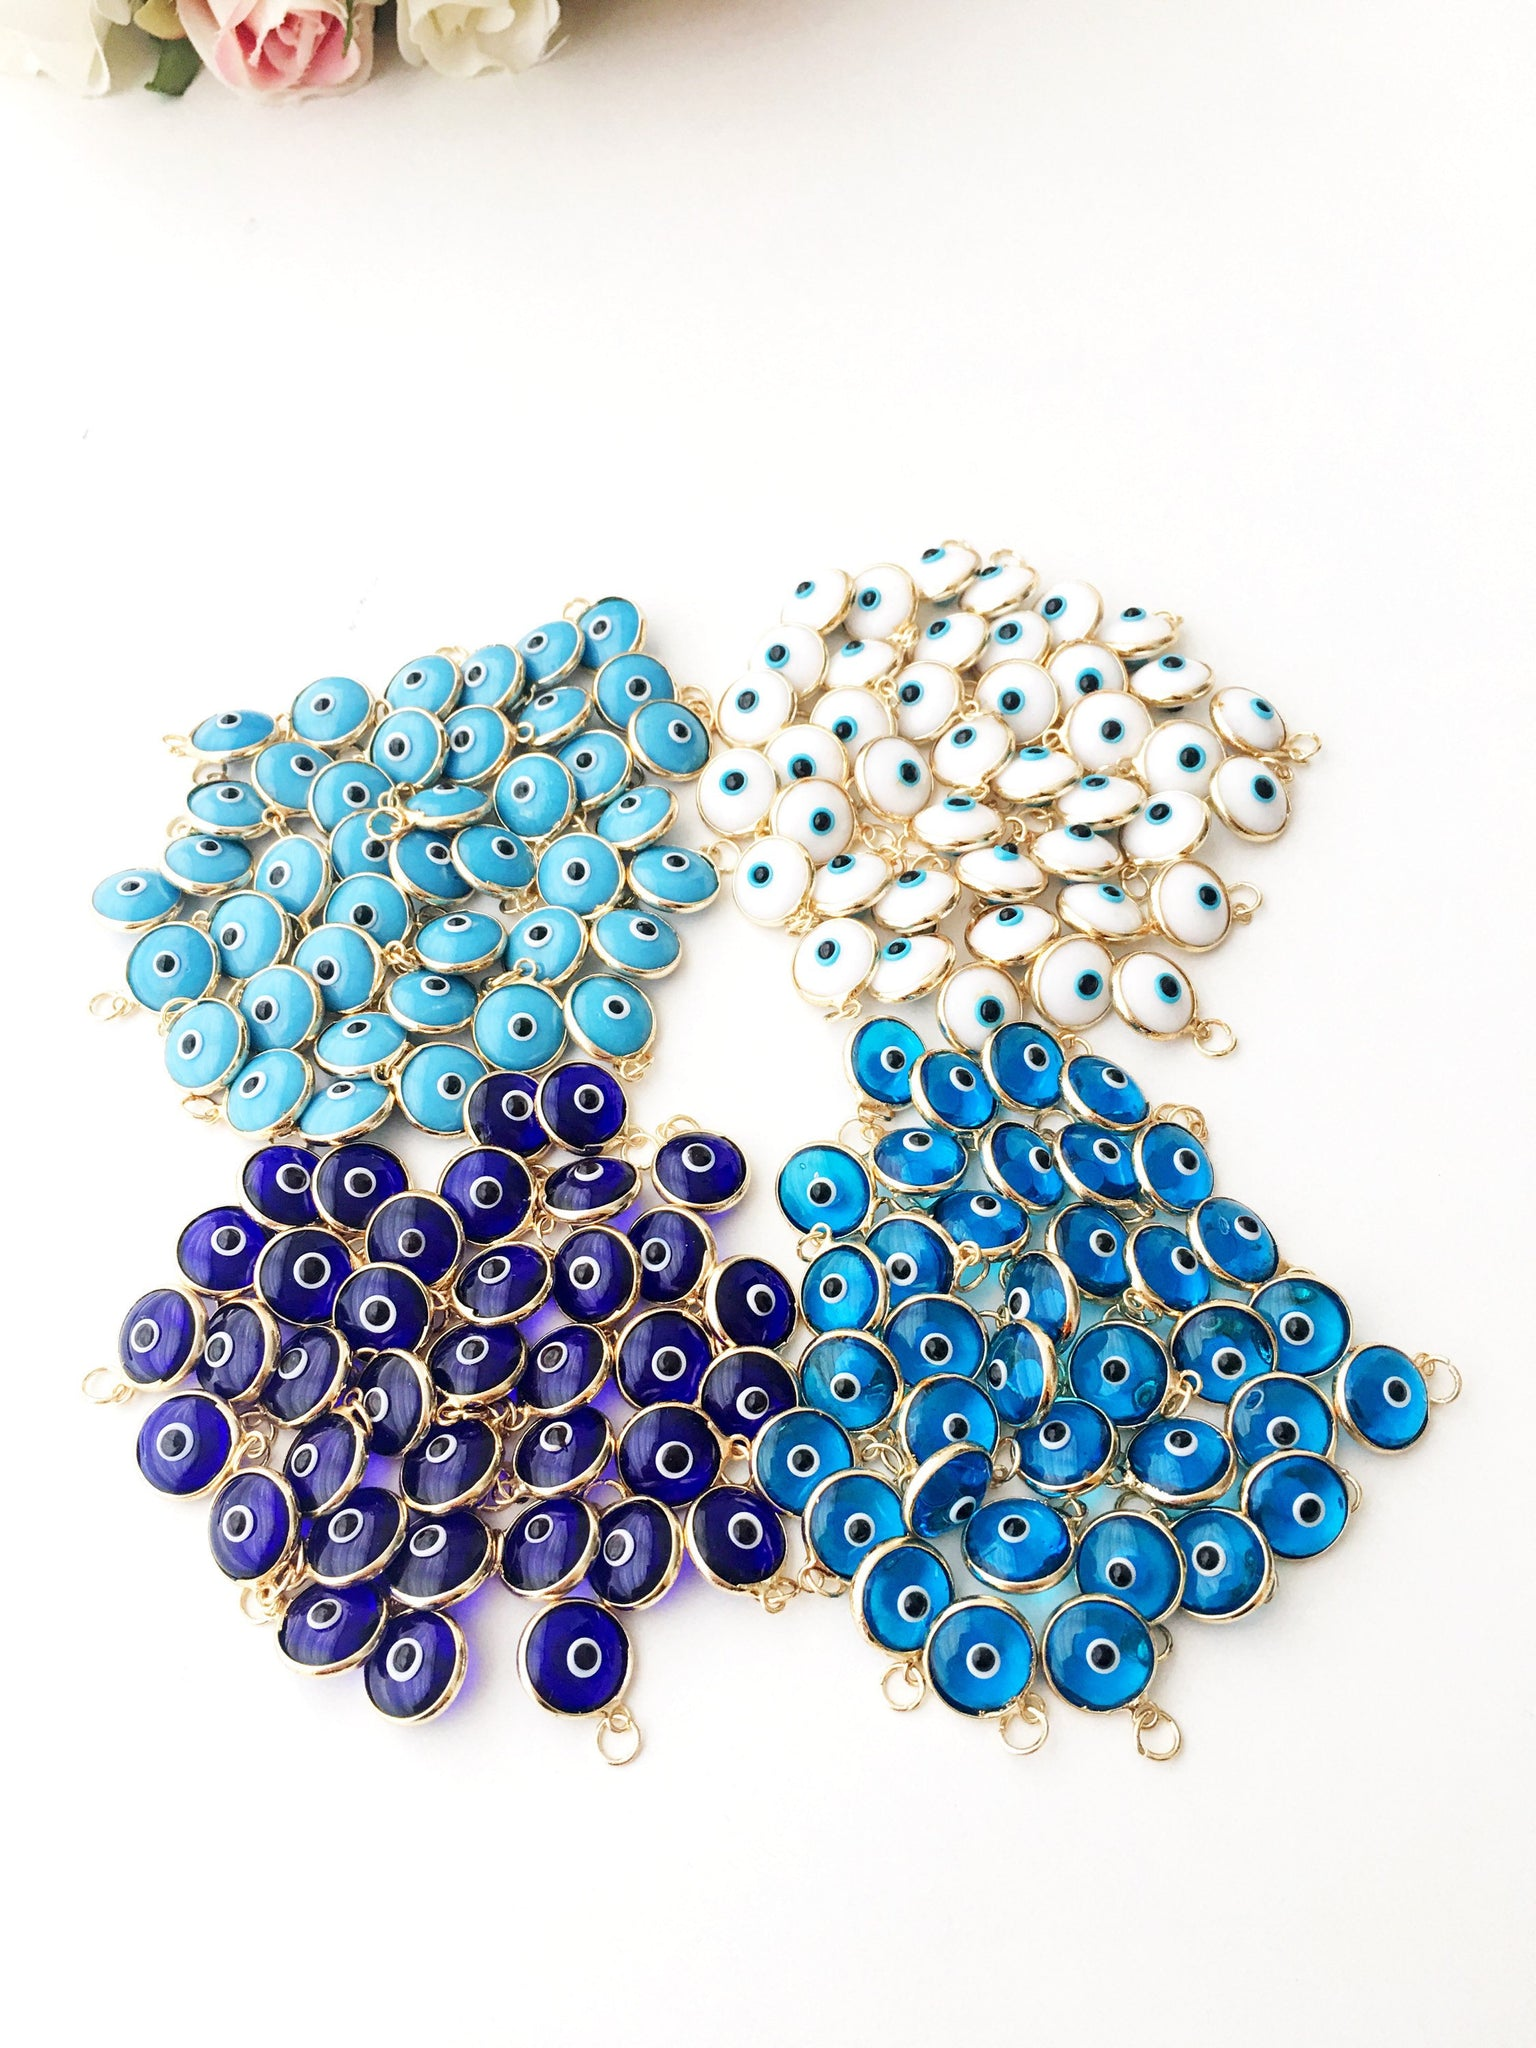 wholesale beads in wooden pin bulk off for charms sale